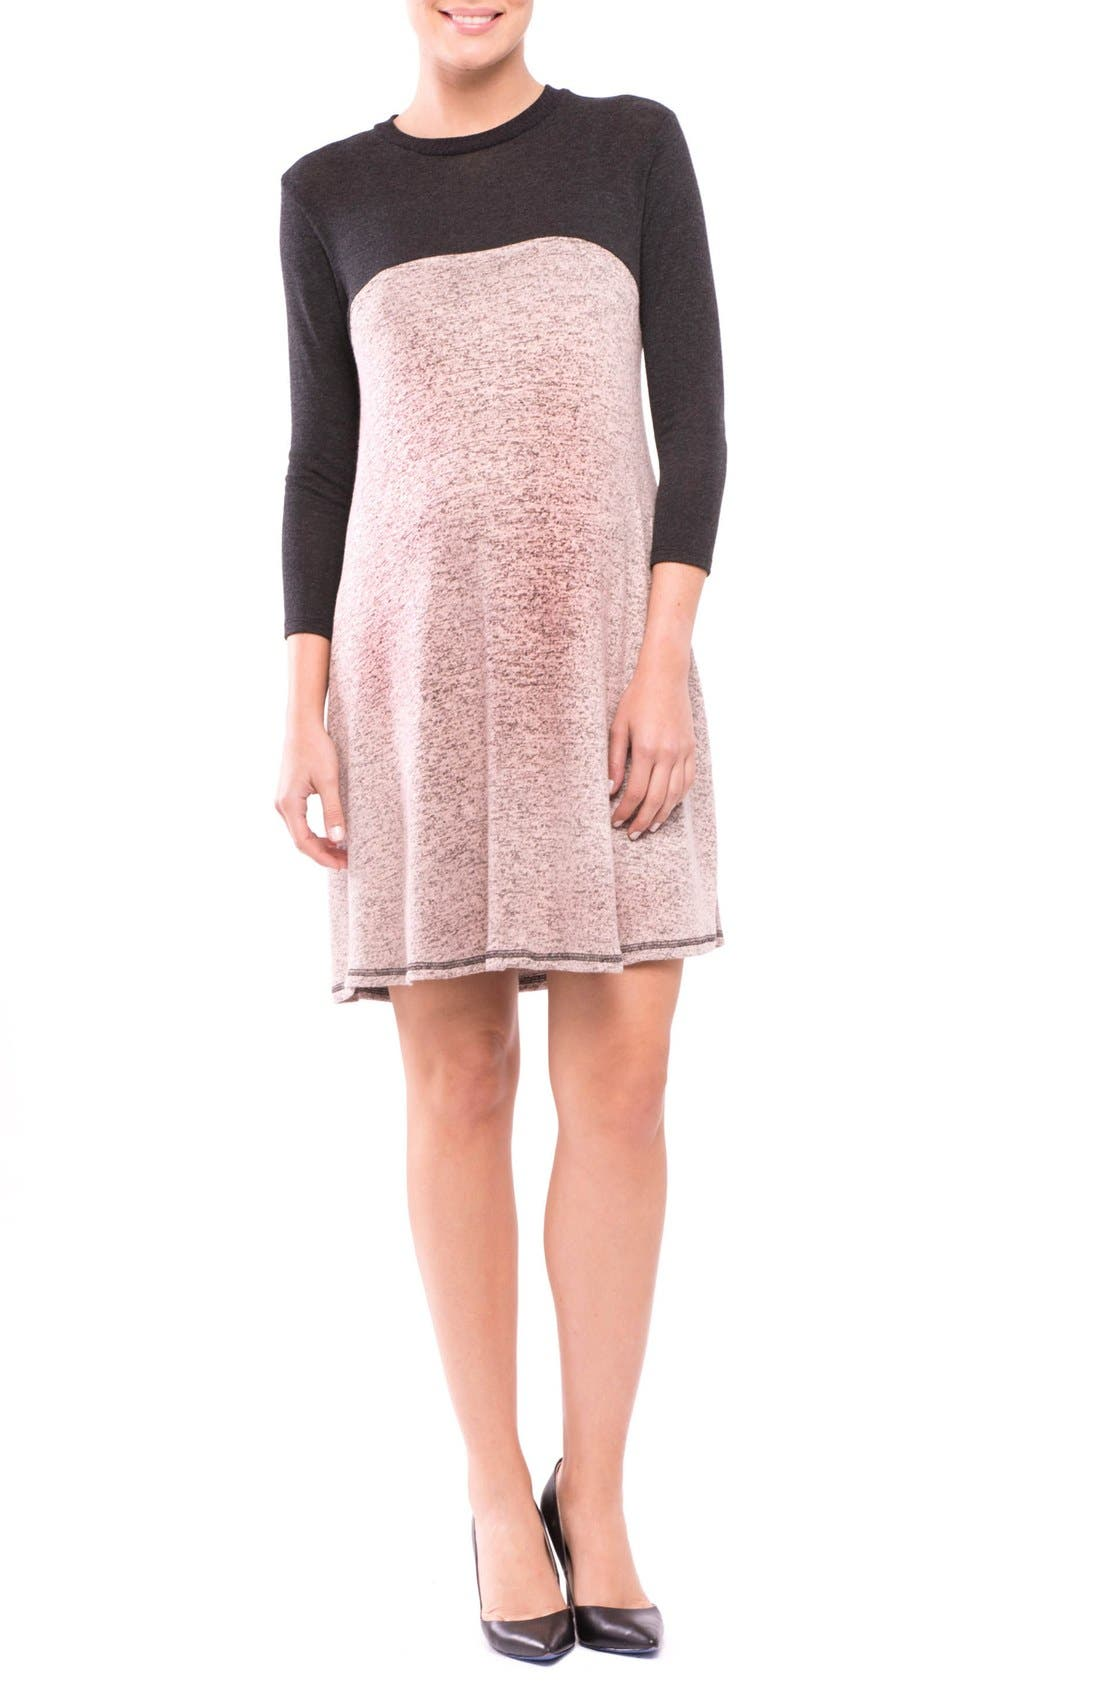 Paola Maternity Sweater Dress,                         Main,                         color, CHARCOAL/ ROSE